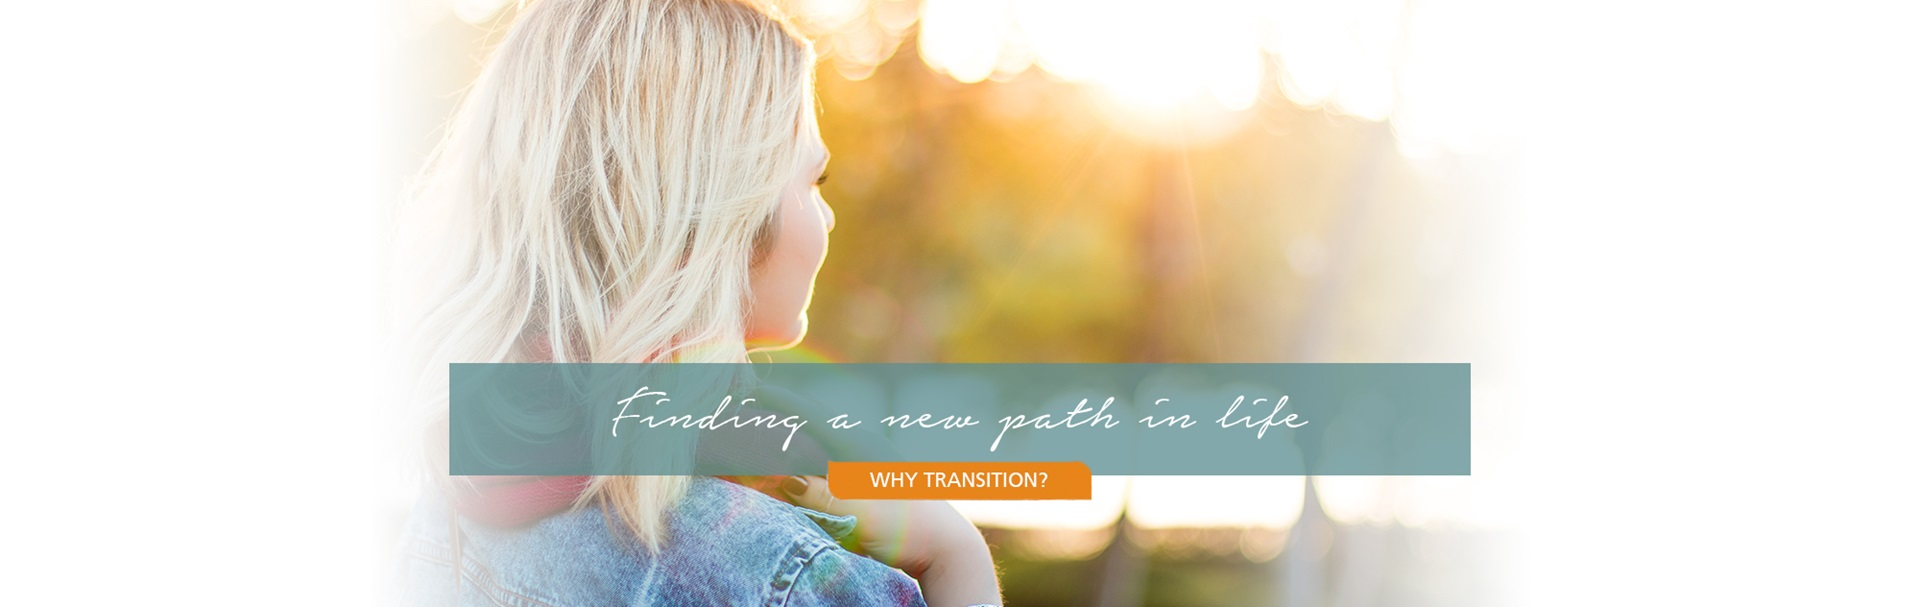 We'll help your daughter through a transition.